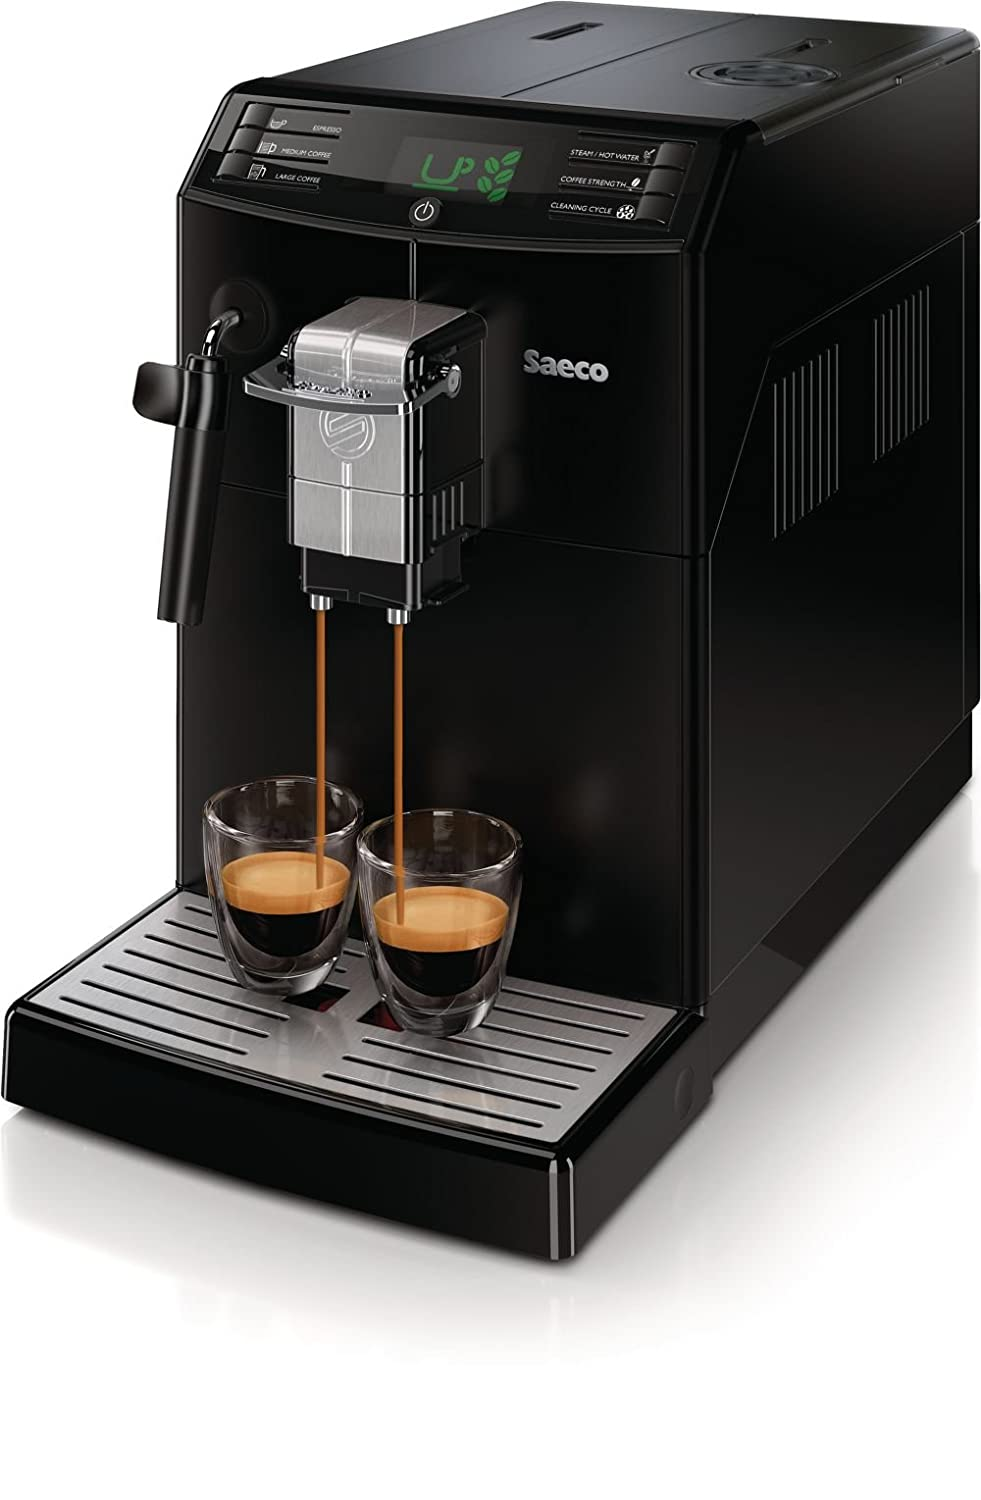 Saeco HD8775/48 Philips Minuto Focus Fully Automatic Espresso Machine Phillips Saeco